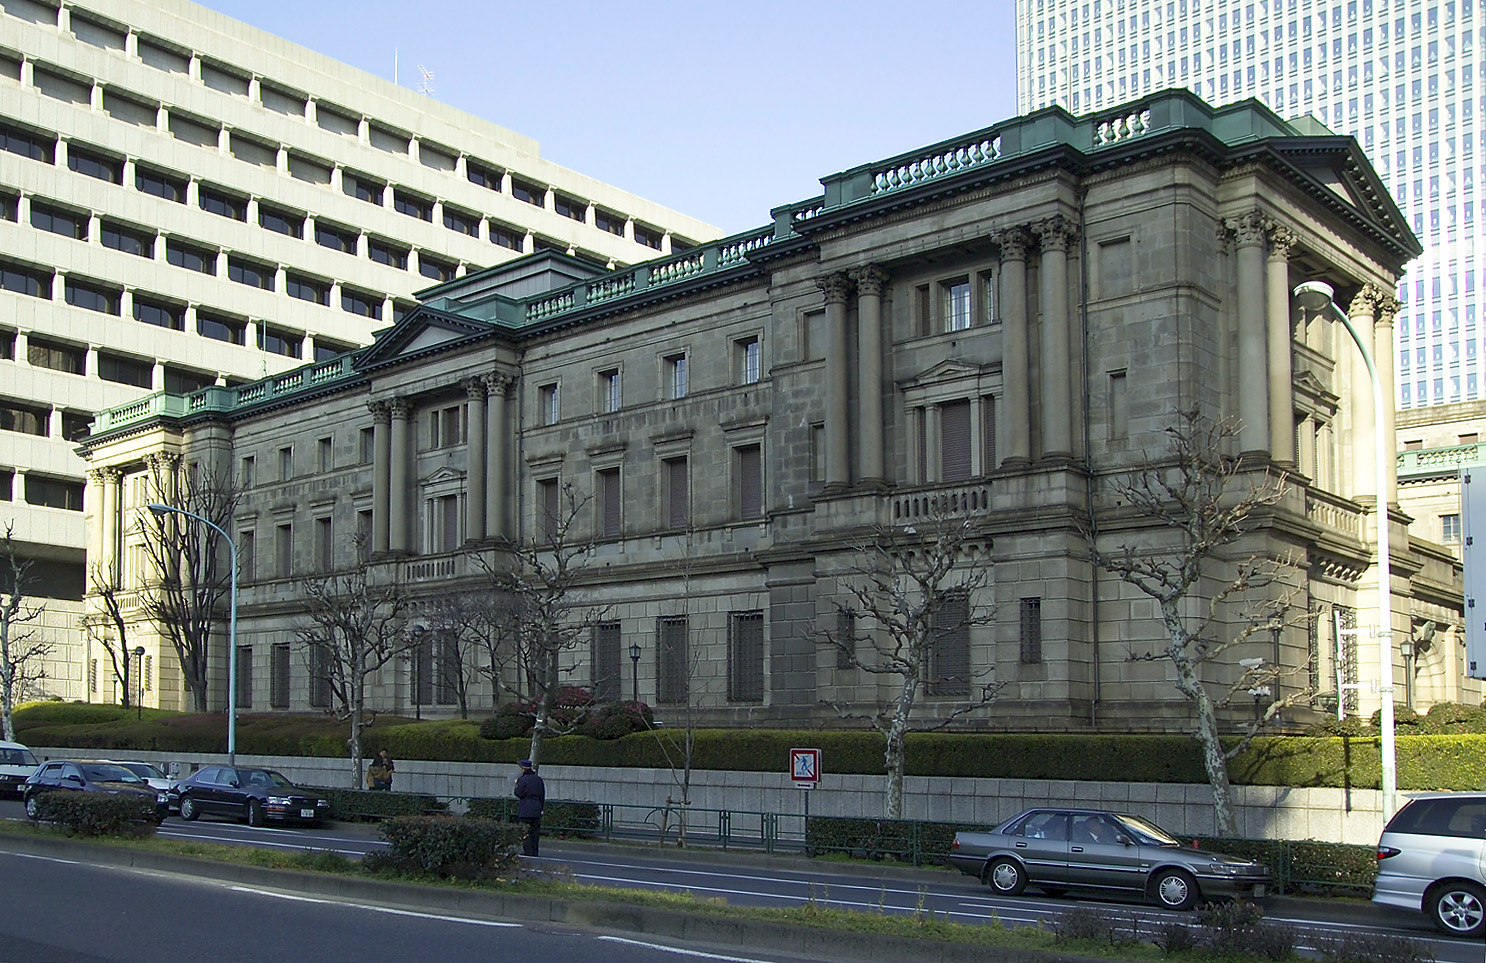 CENTRAL BANK OF JAPAN EPUB